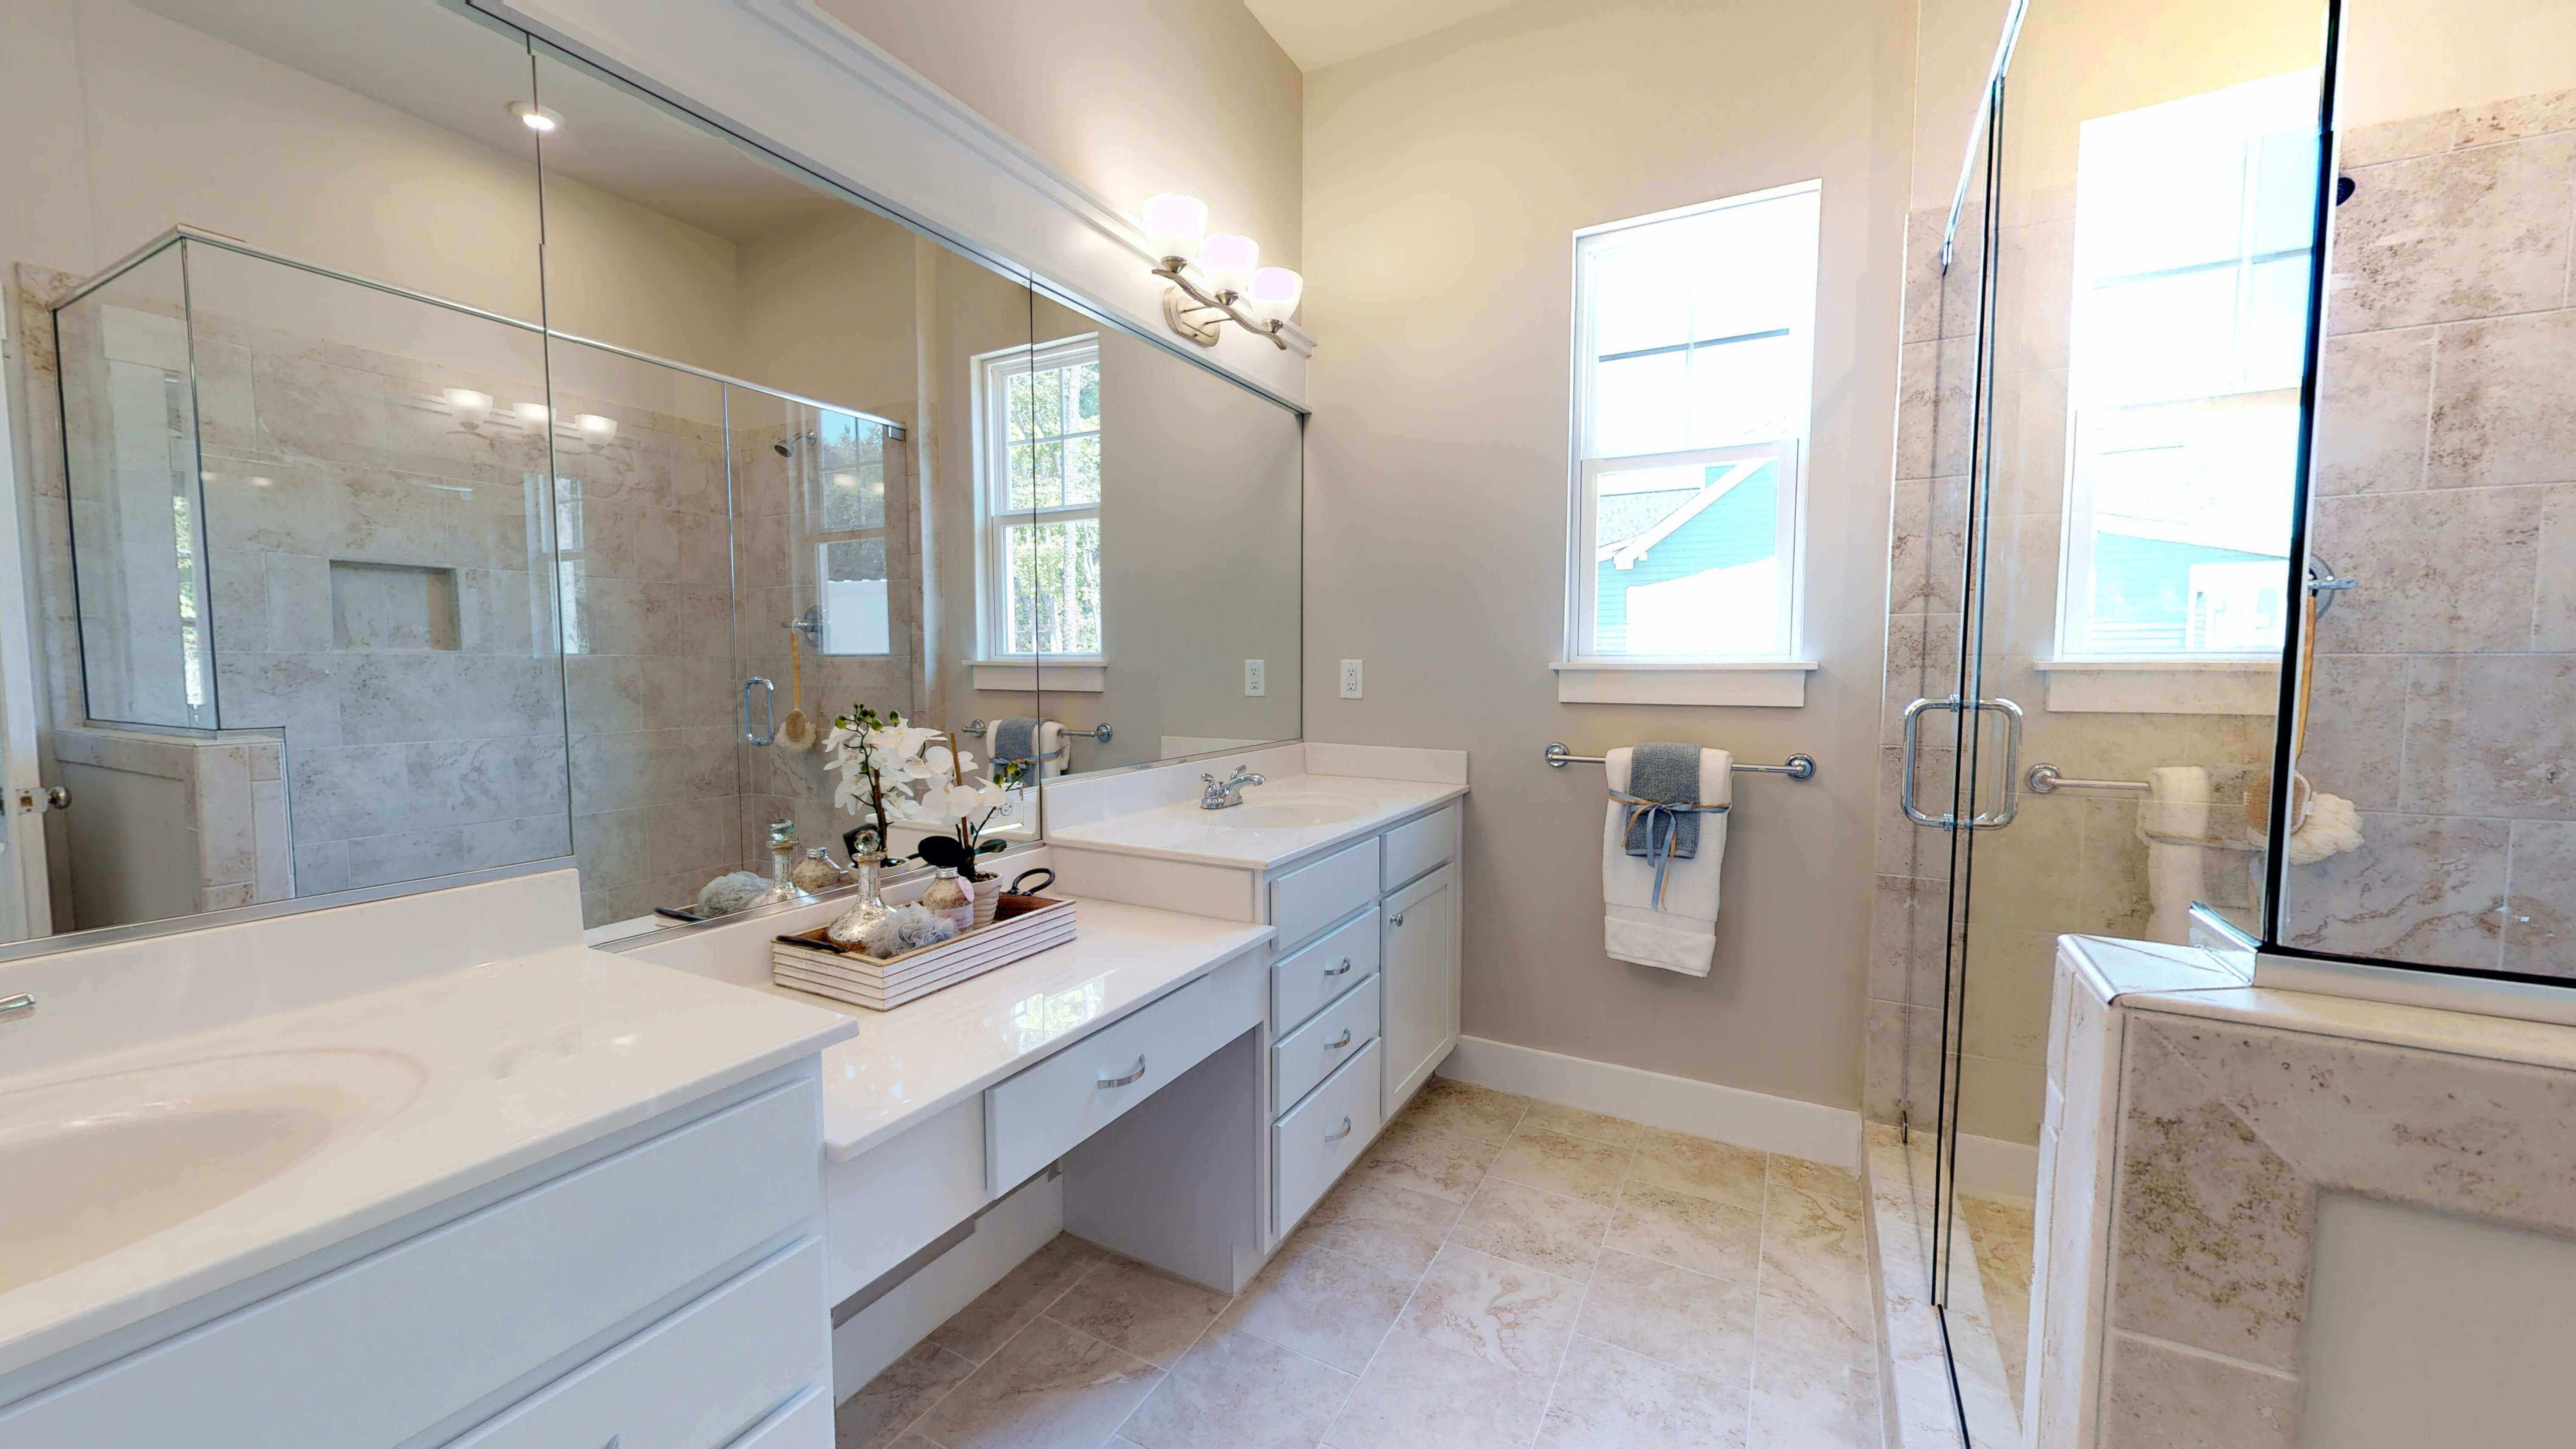 Bathroom featured in the Cape Charles By Stephen Alexander Homes in Outer Banks, NC